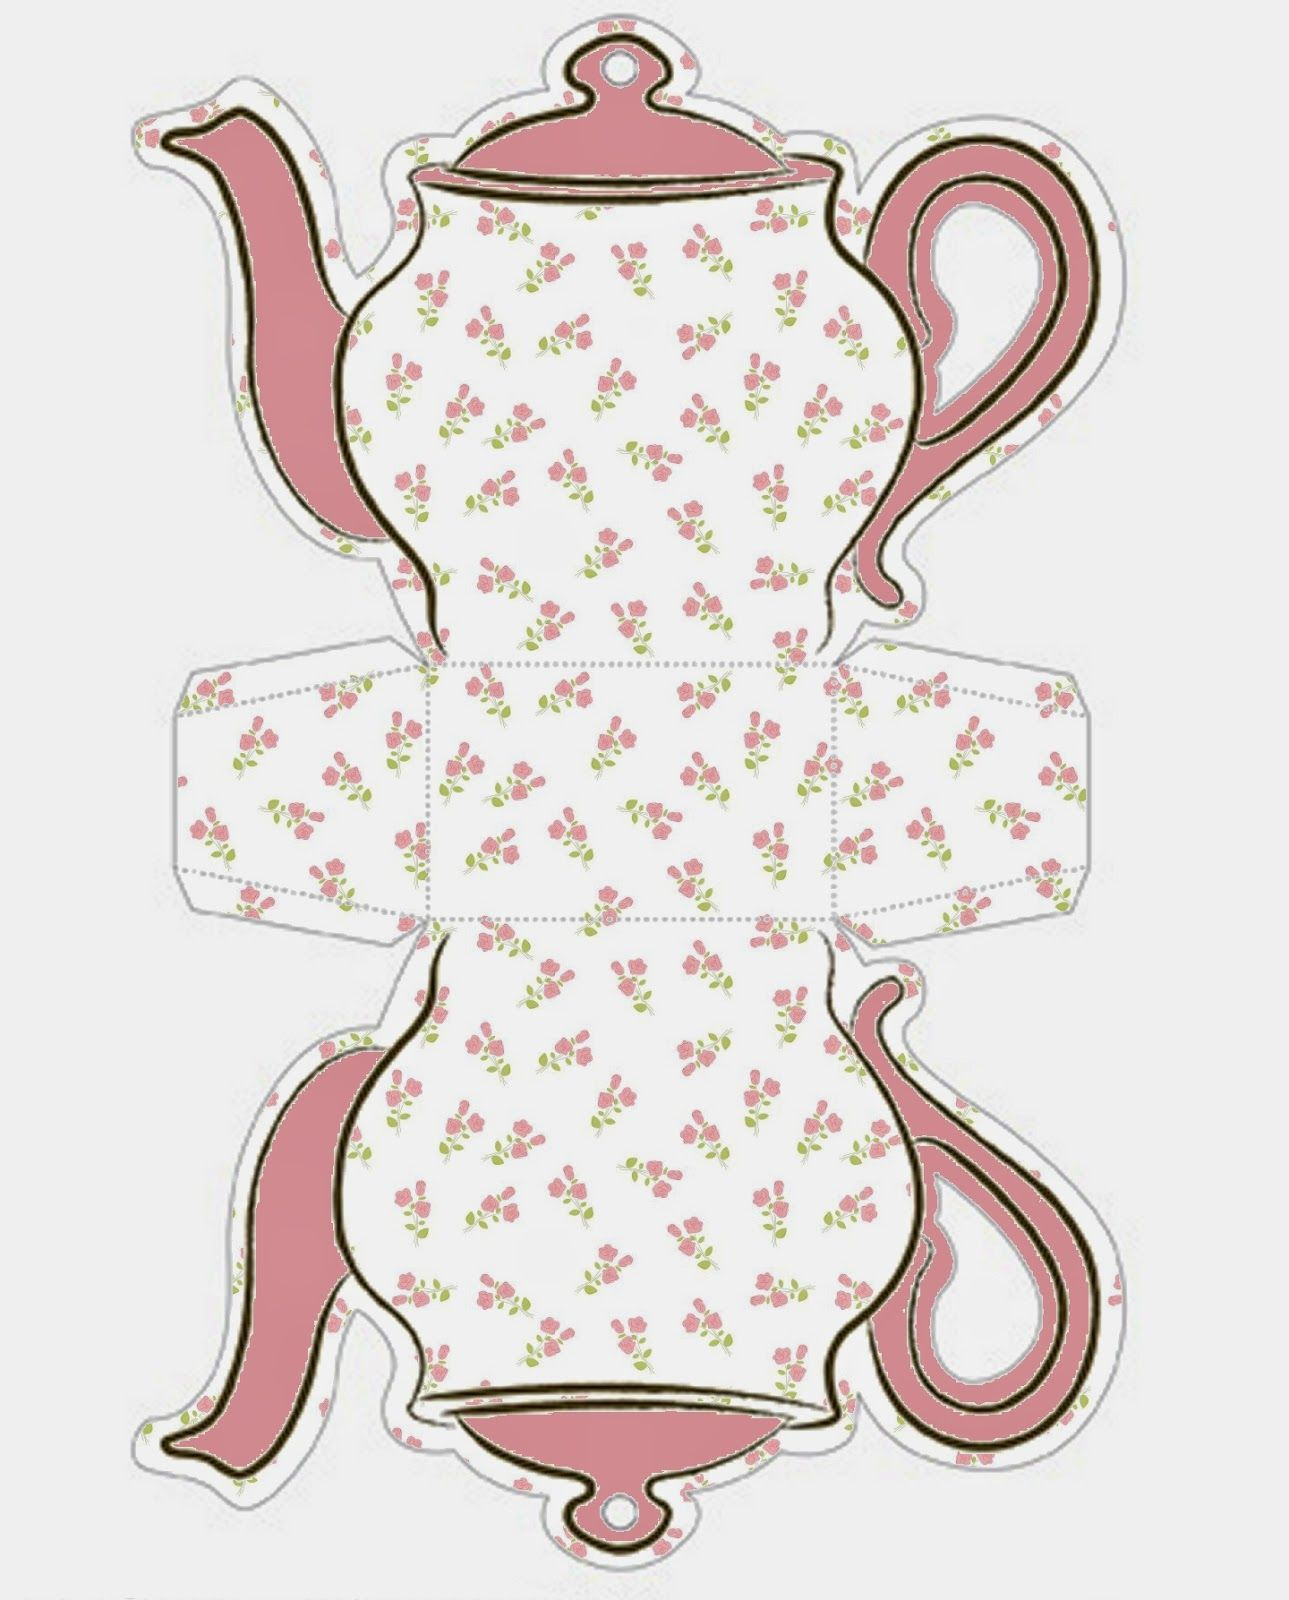 graphic relating to Teapot Template Free Printable identify Cost-free Printable Teapot Present Box Templates I enjoy Totally free